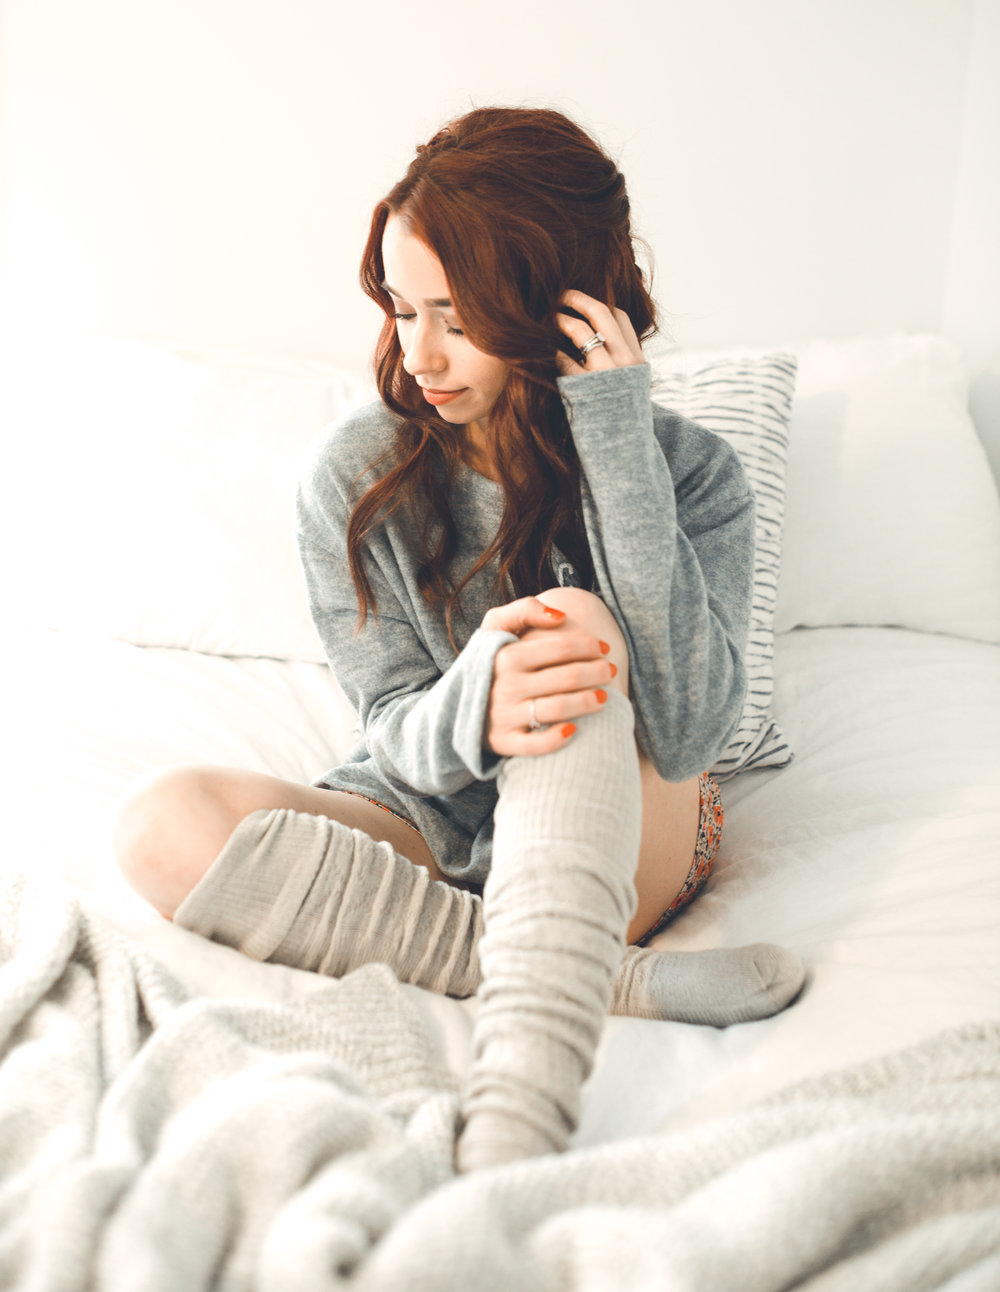 Cozy Sweatshirt , RaeLynn's BTQ ||  Floral PJ Bottoms , Target ||  Floral Tea Cup , Target ||  Cozy Knit Socks , Target ||  Indie Lee Body Oil , Eva Maison ||  Big T NYC , Eva Maison ||  3-2-1 Facial Kit , Eva Maison || Hair,  G. Michael Salon  || Photography,  Casey Ardizzone